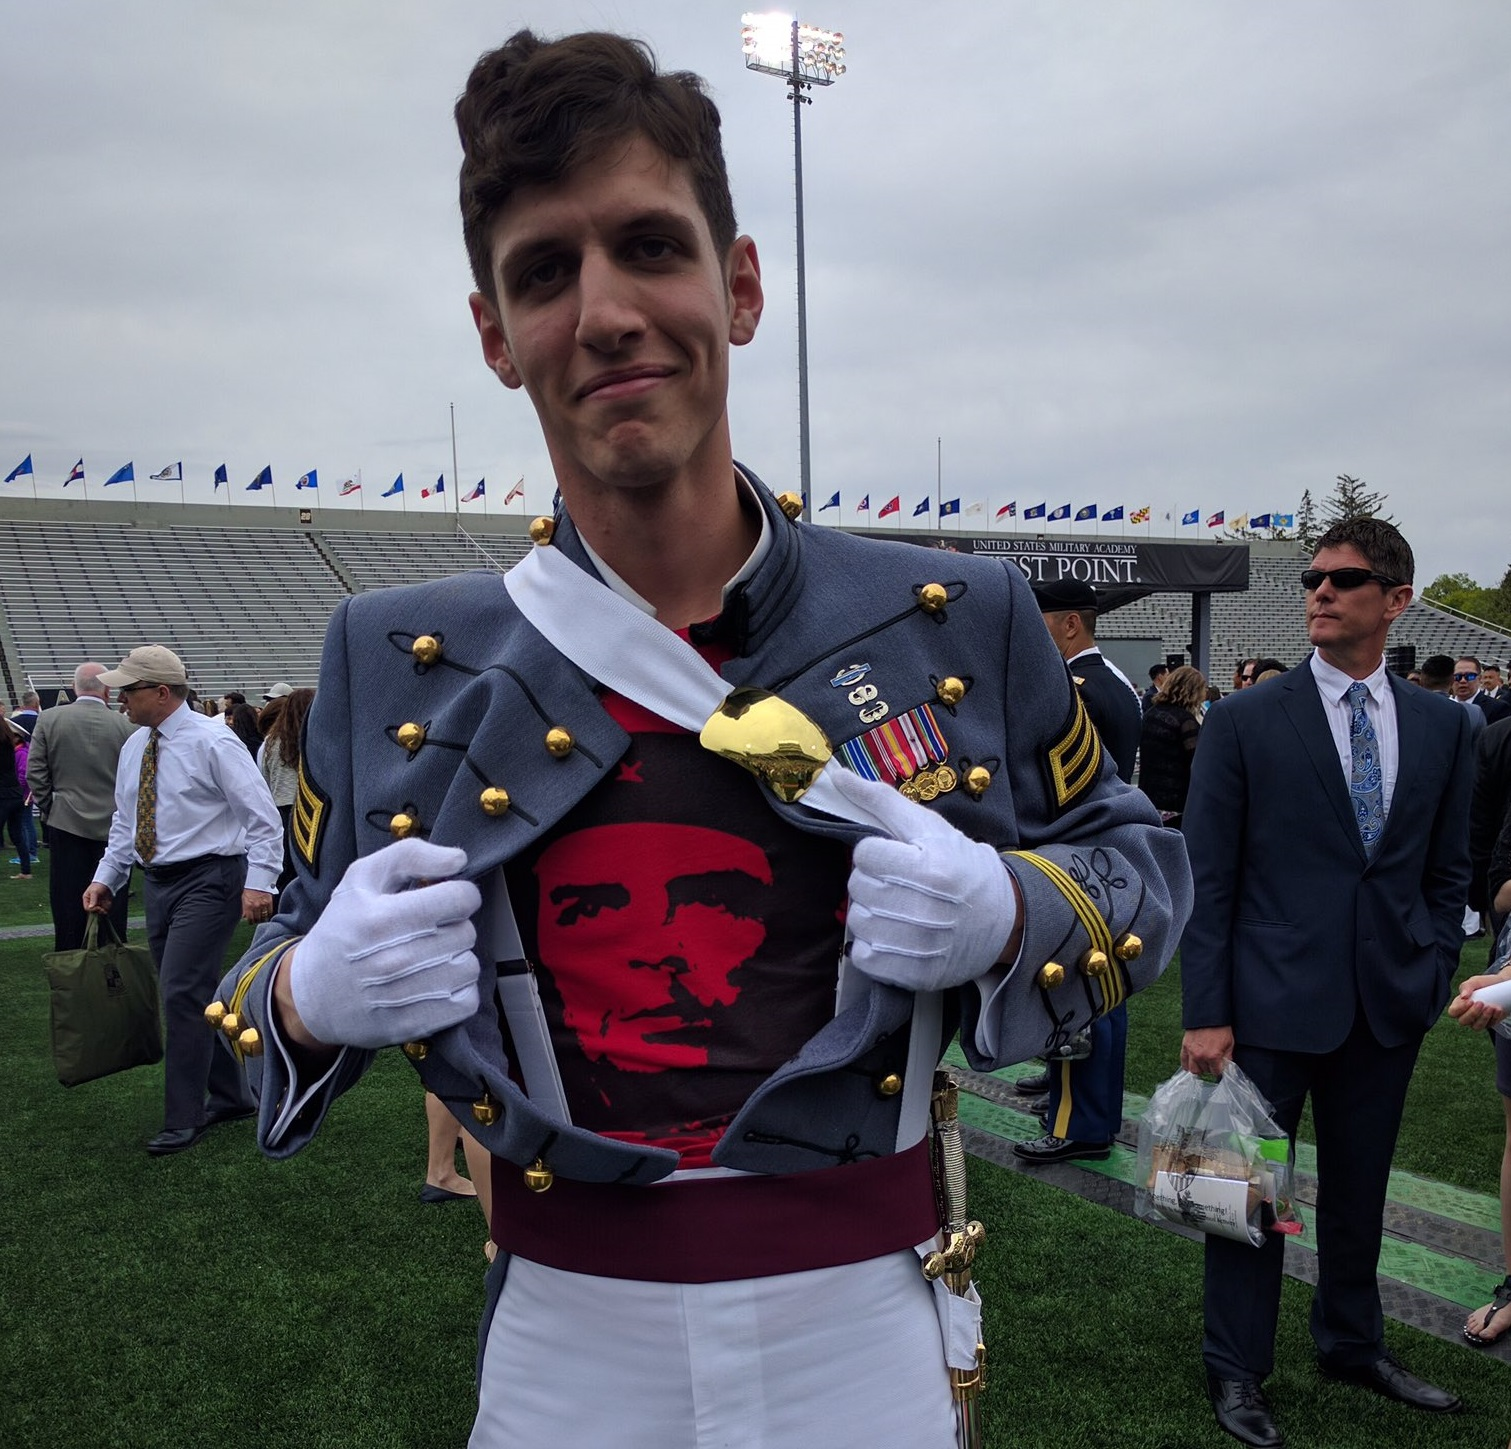 West Point superintendent responds to outrage over pro-Communist former cadet